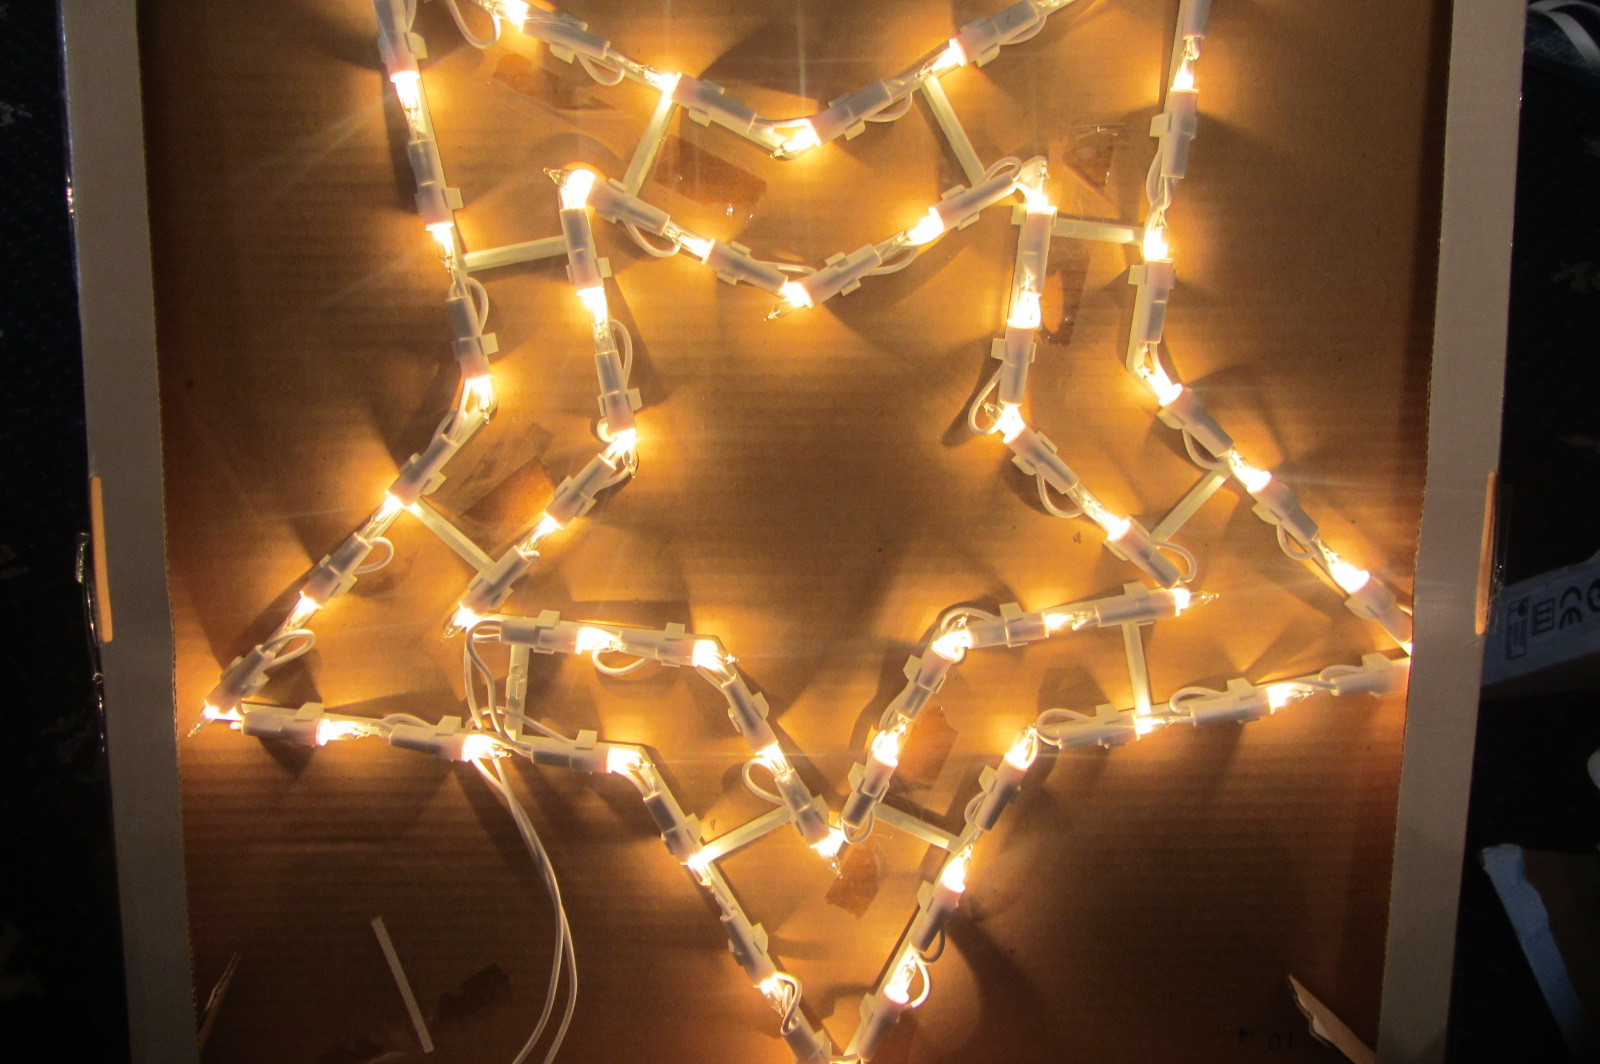 Wall Christmas Lights : INDOOR SILHOUETTE 50 ALL ON LIGHT STAR CHRISTMAS LIGHTS WALL TOP WINDOW C144 eBay